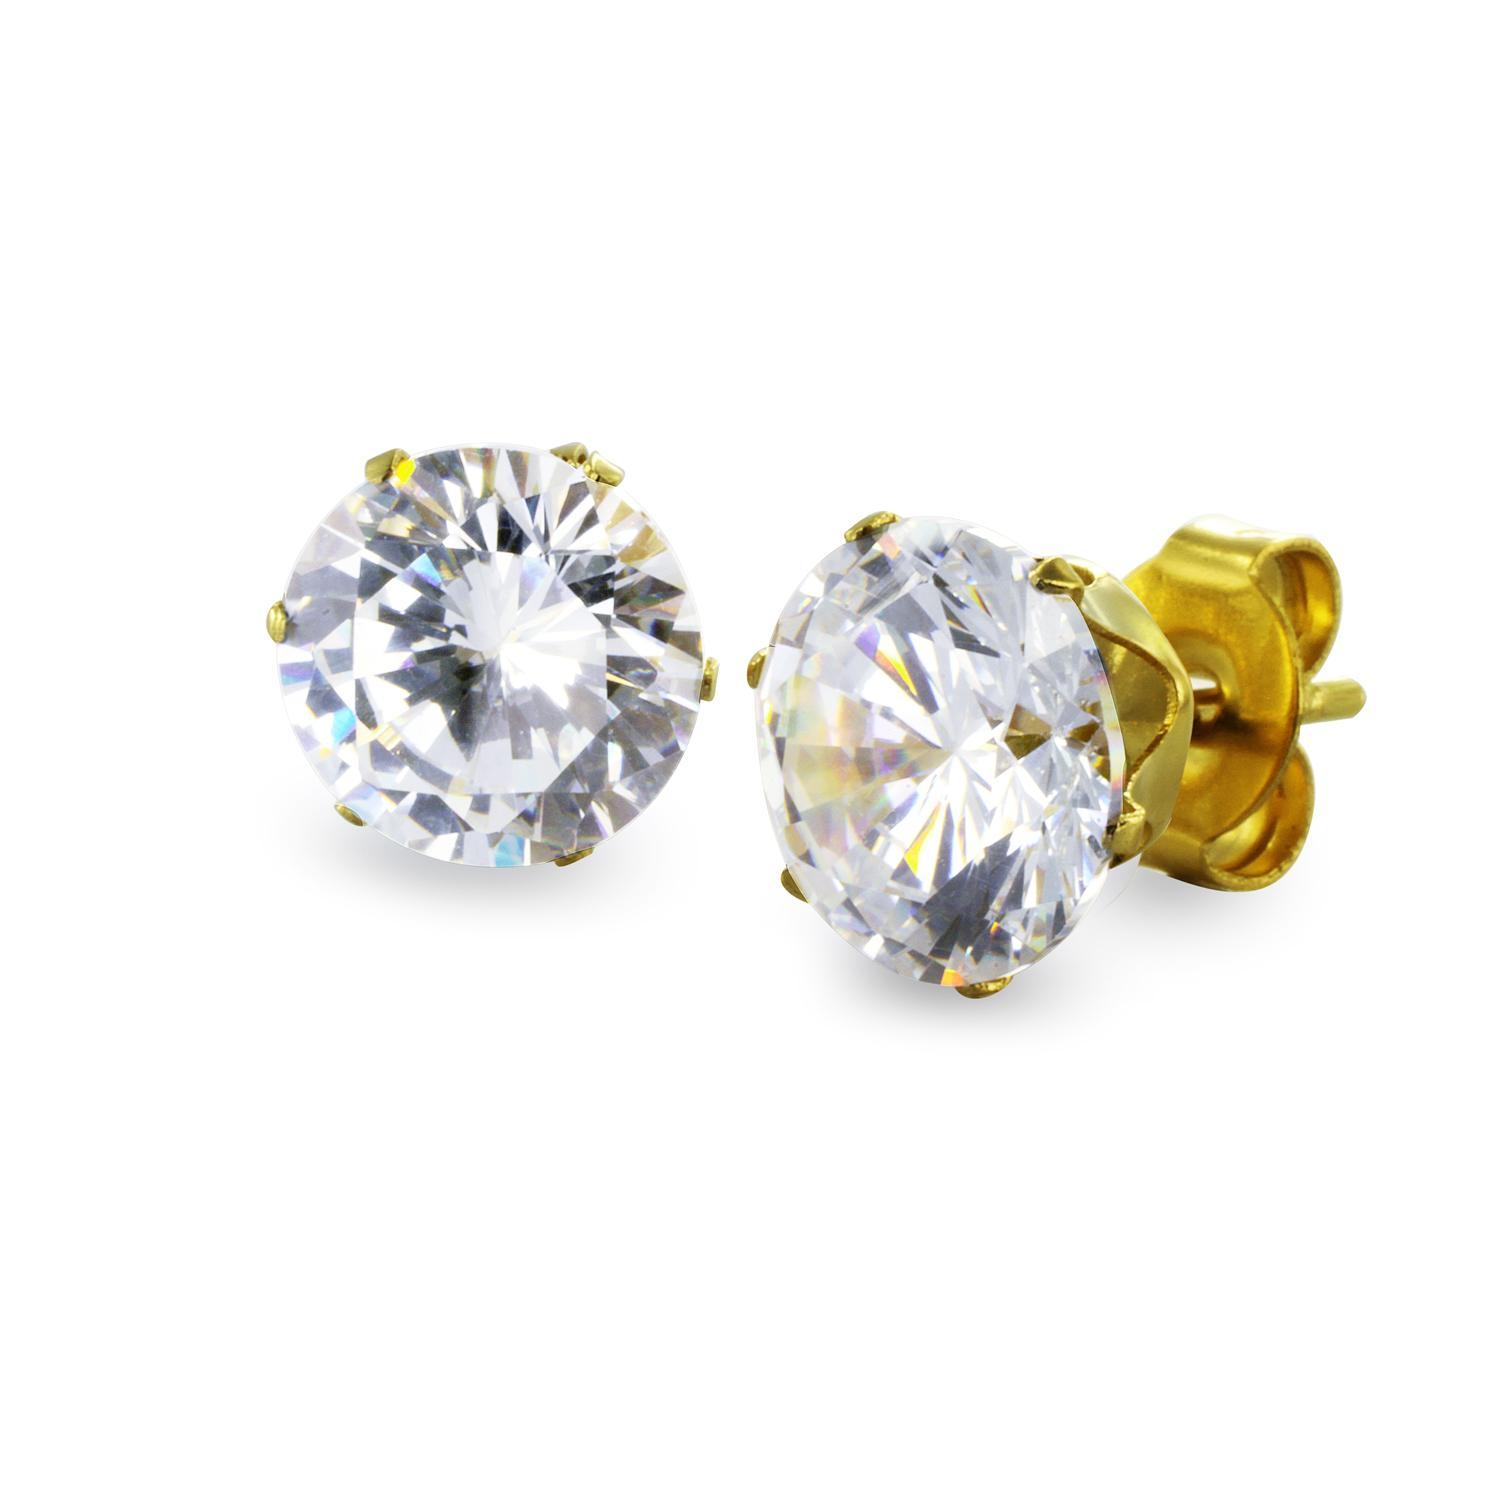 Gold Plated Stainless Steel Stud Earrings with Round Clear CZ - 7 mm